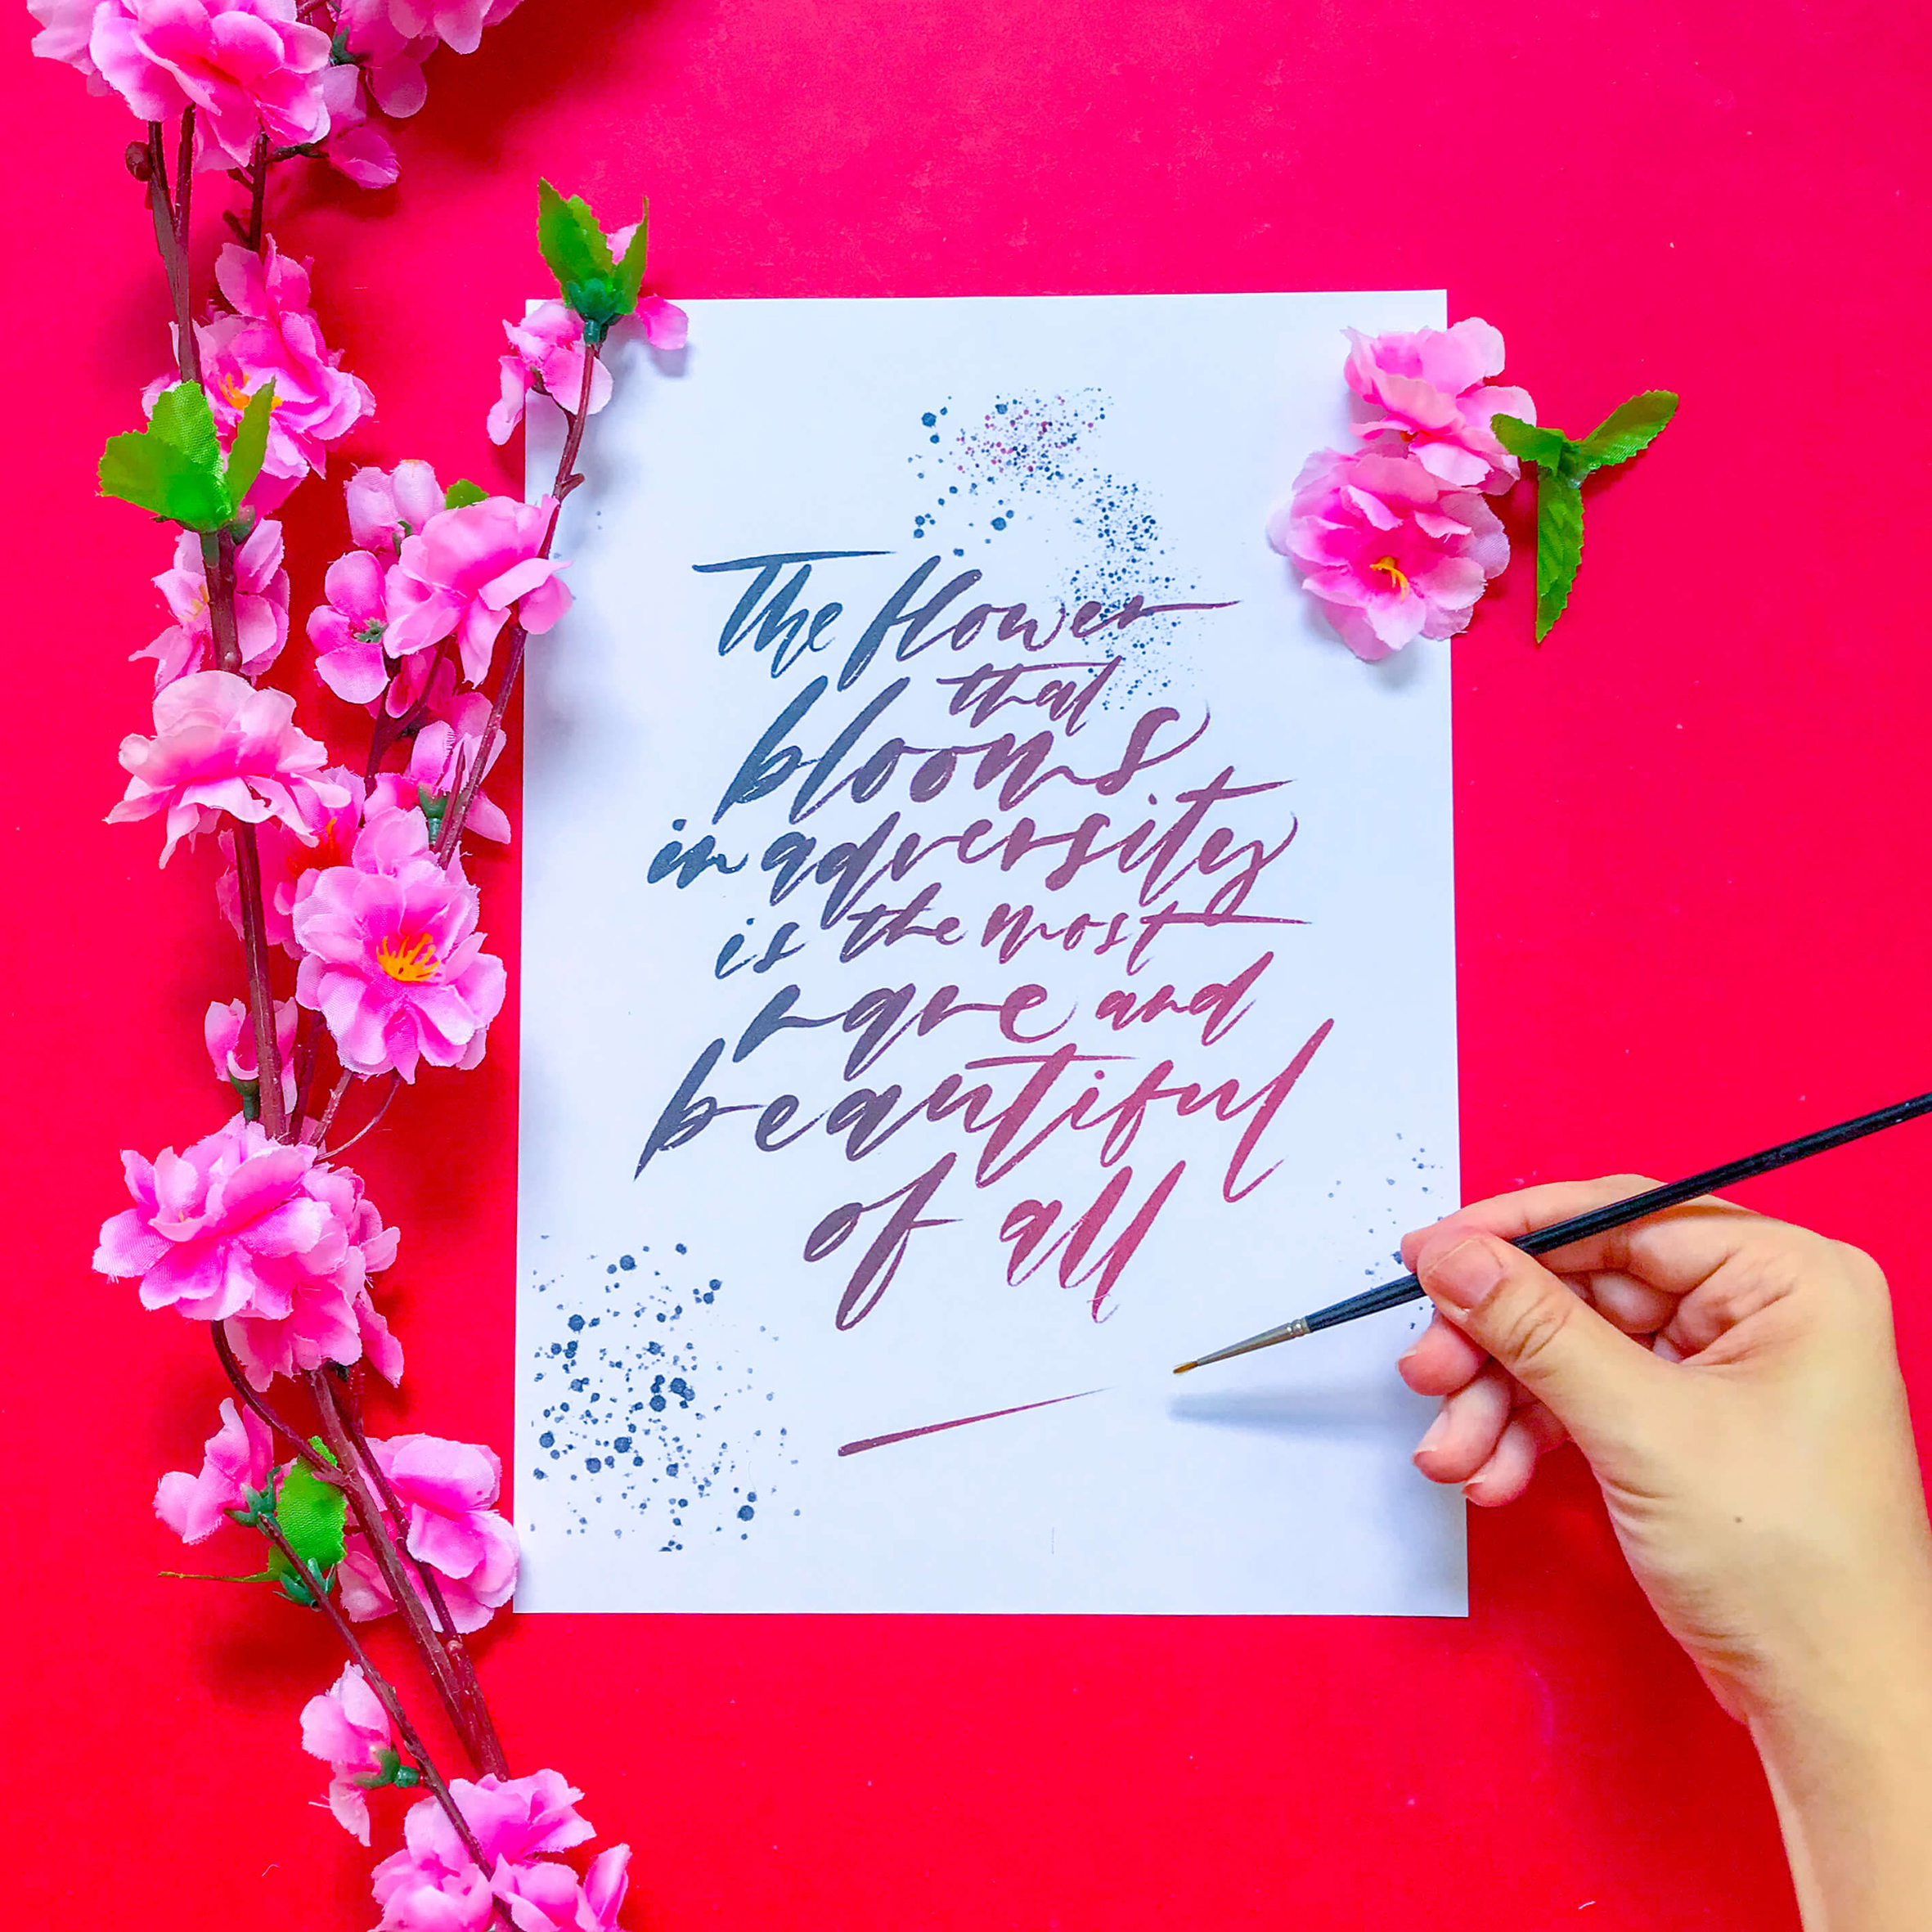 Trace Your Own Mulan Calligraphy